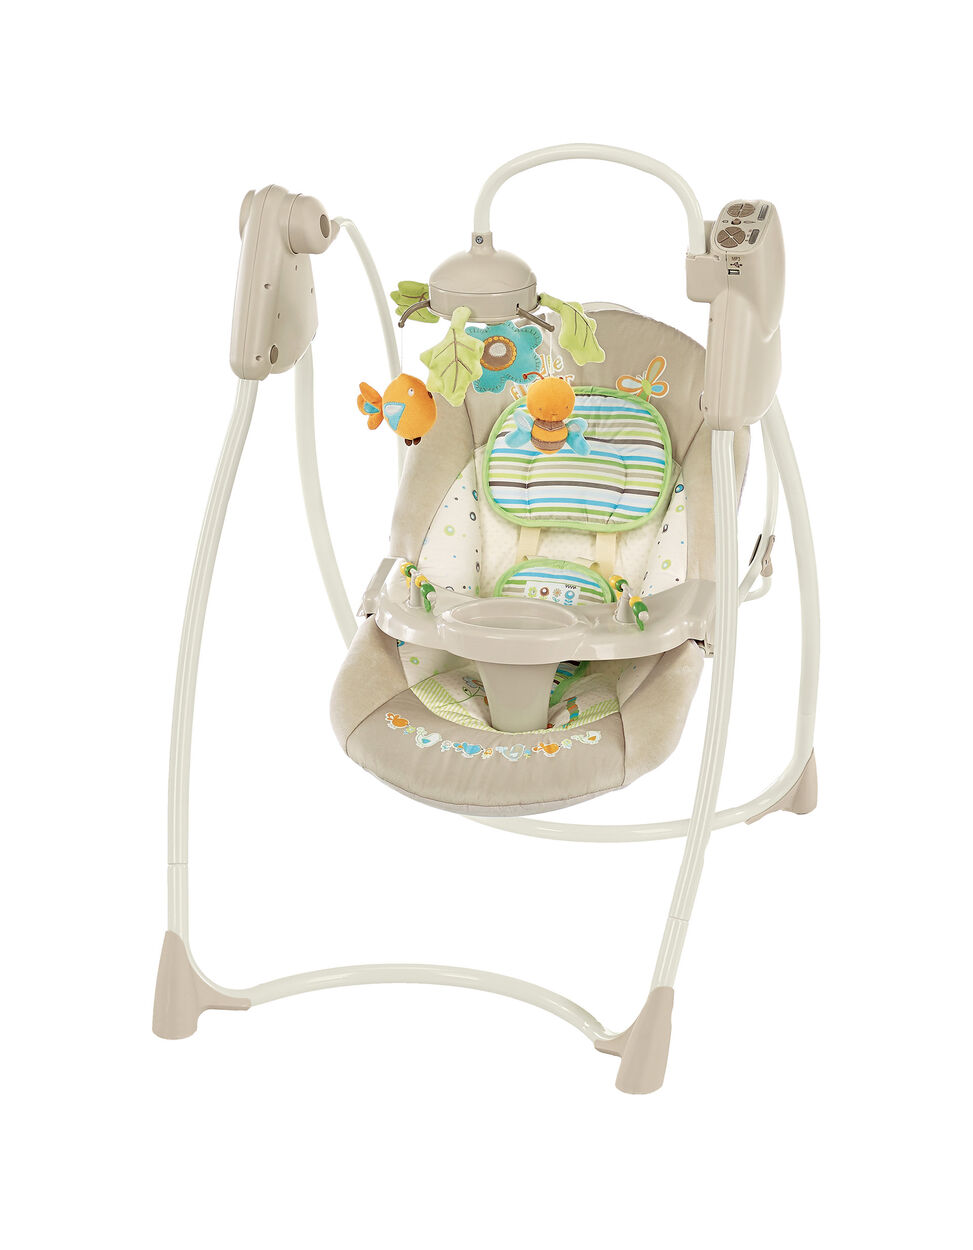 Althea Swing with Rocking Seat by Brevi